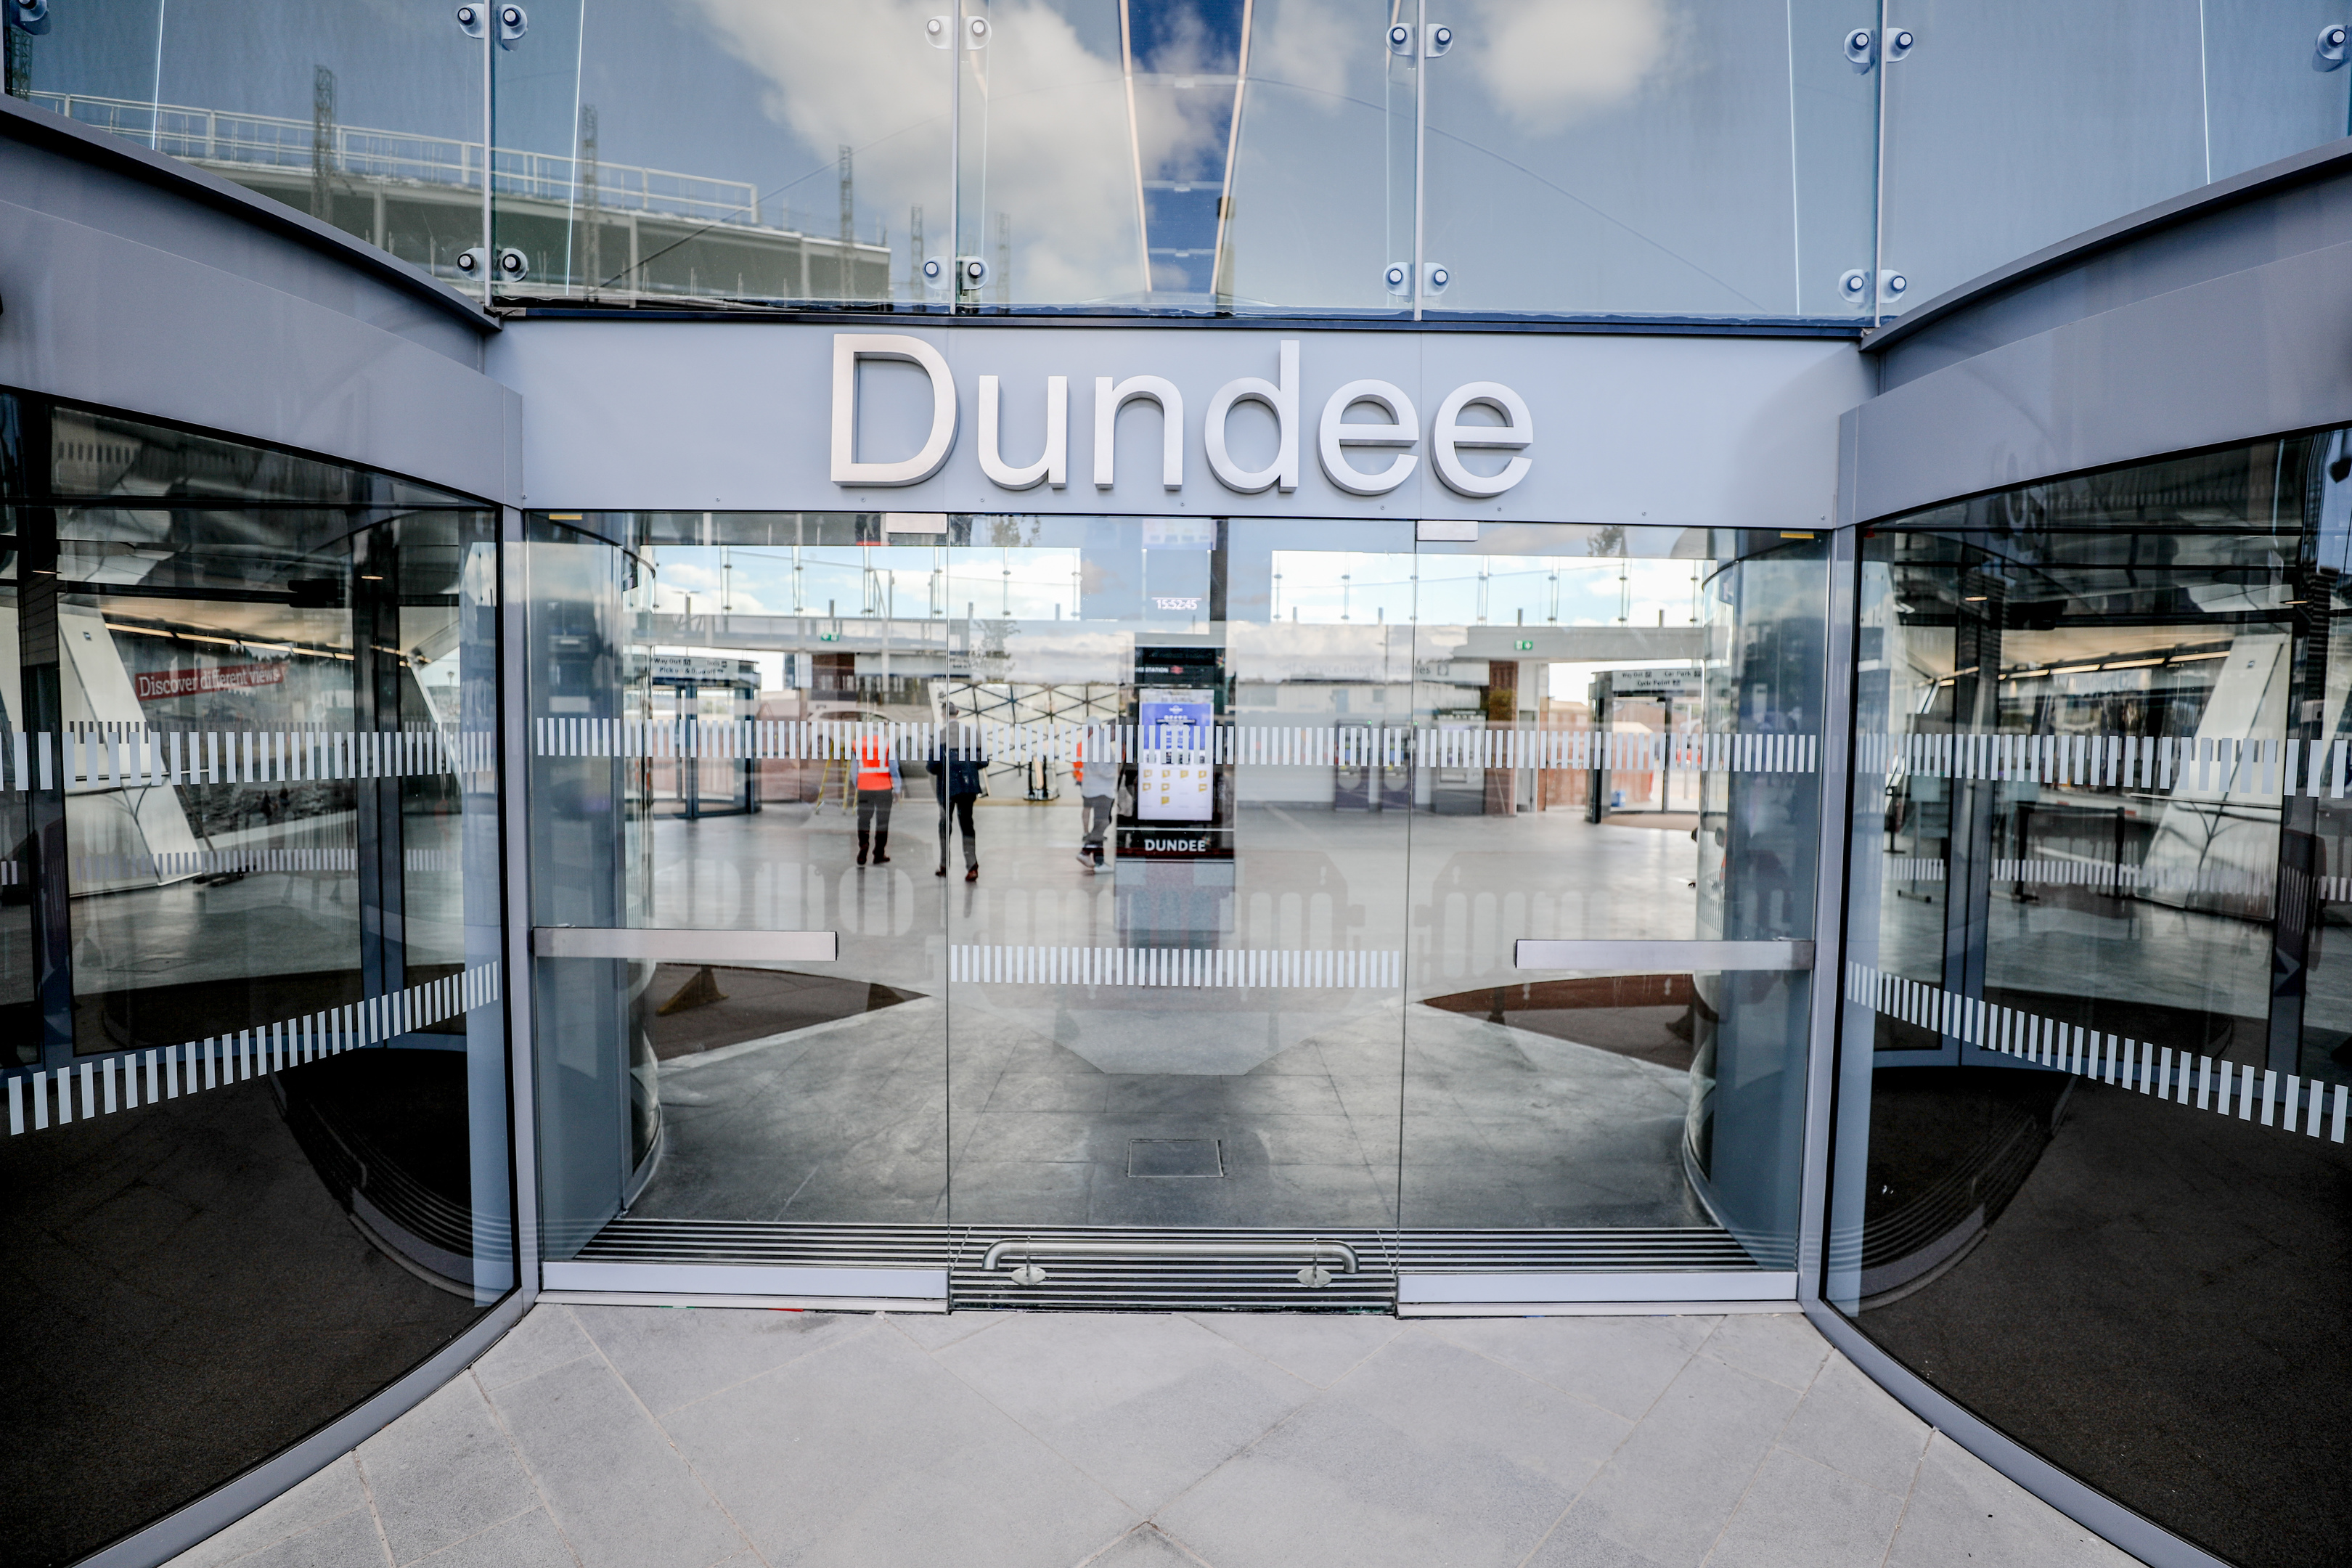 The entrance to Dundee's new station